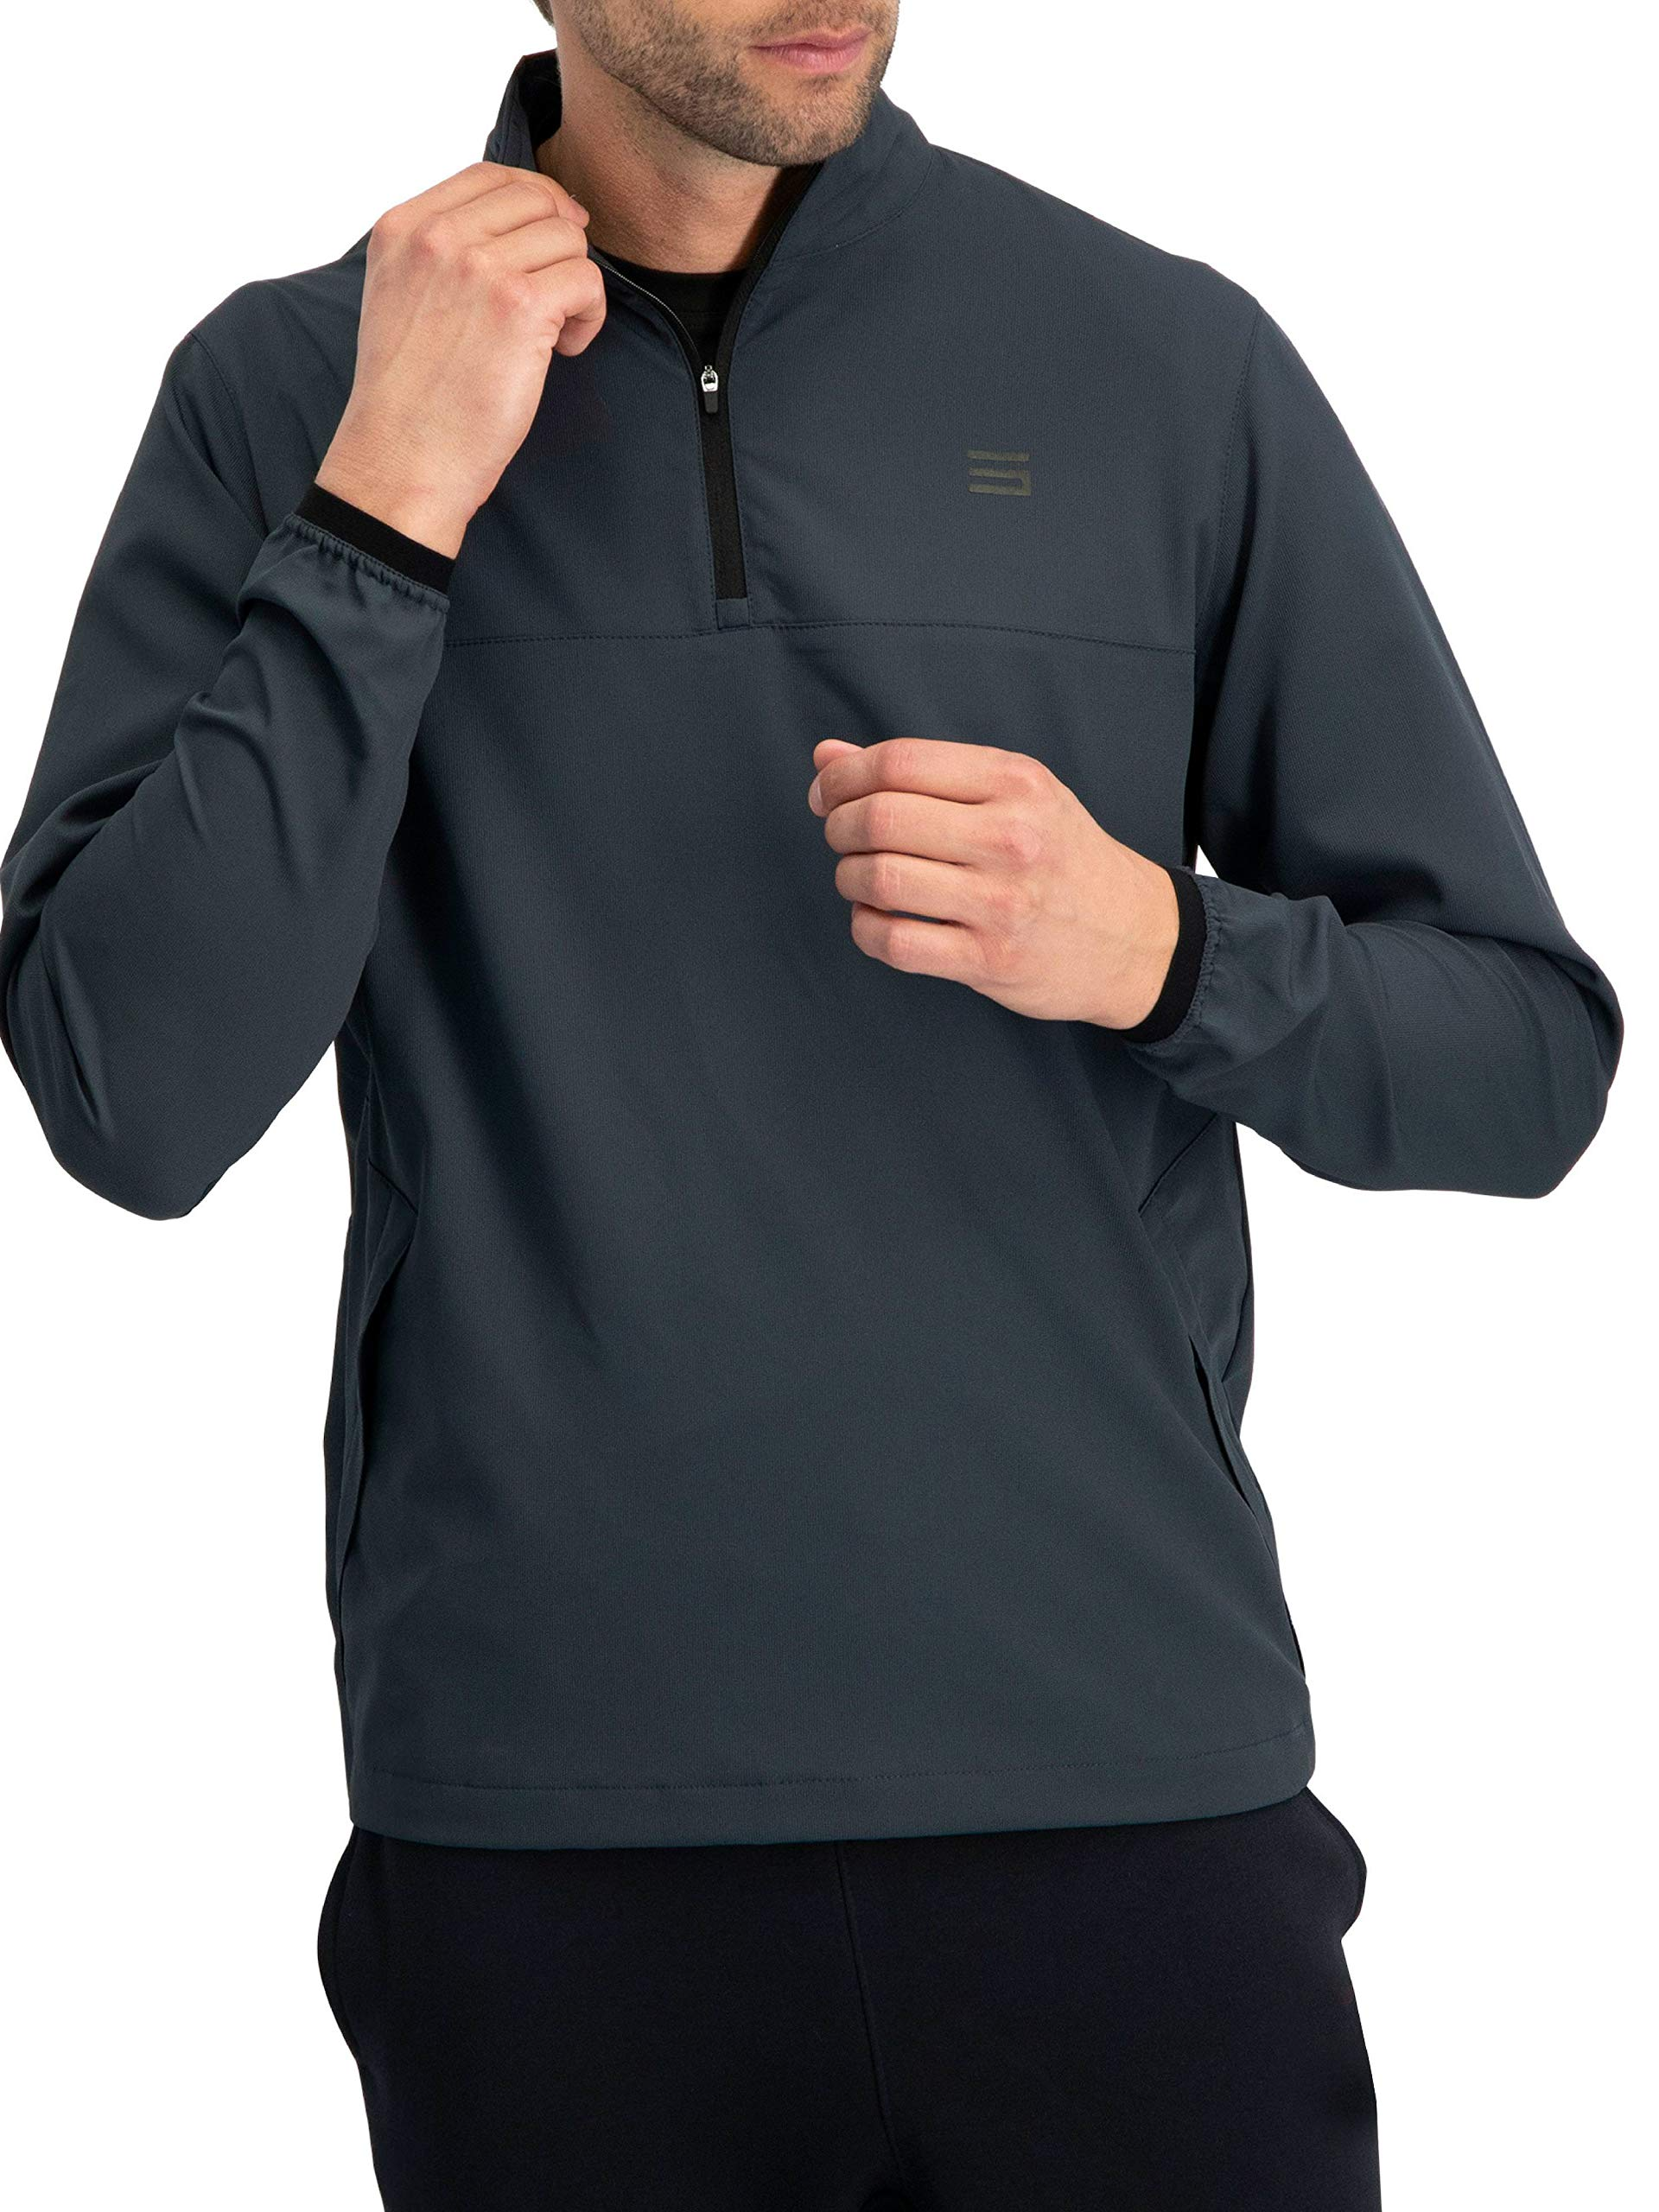 Mens Windbreaker Jackets - Half Zip Golf Pullover Wind Jacket - Vented, Dry Fit Charcoal by Three Sixty Six